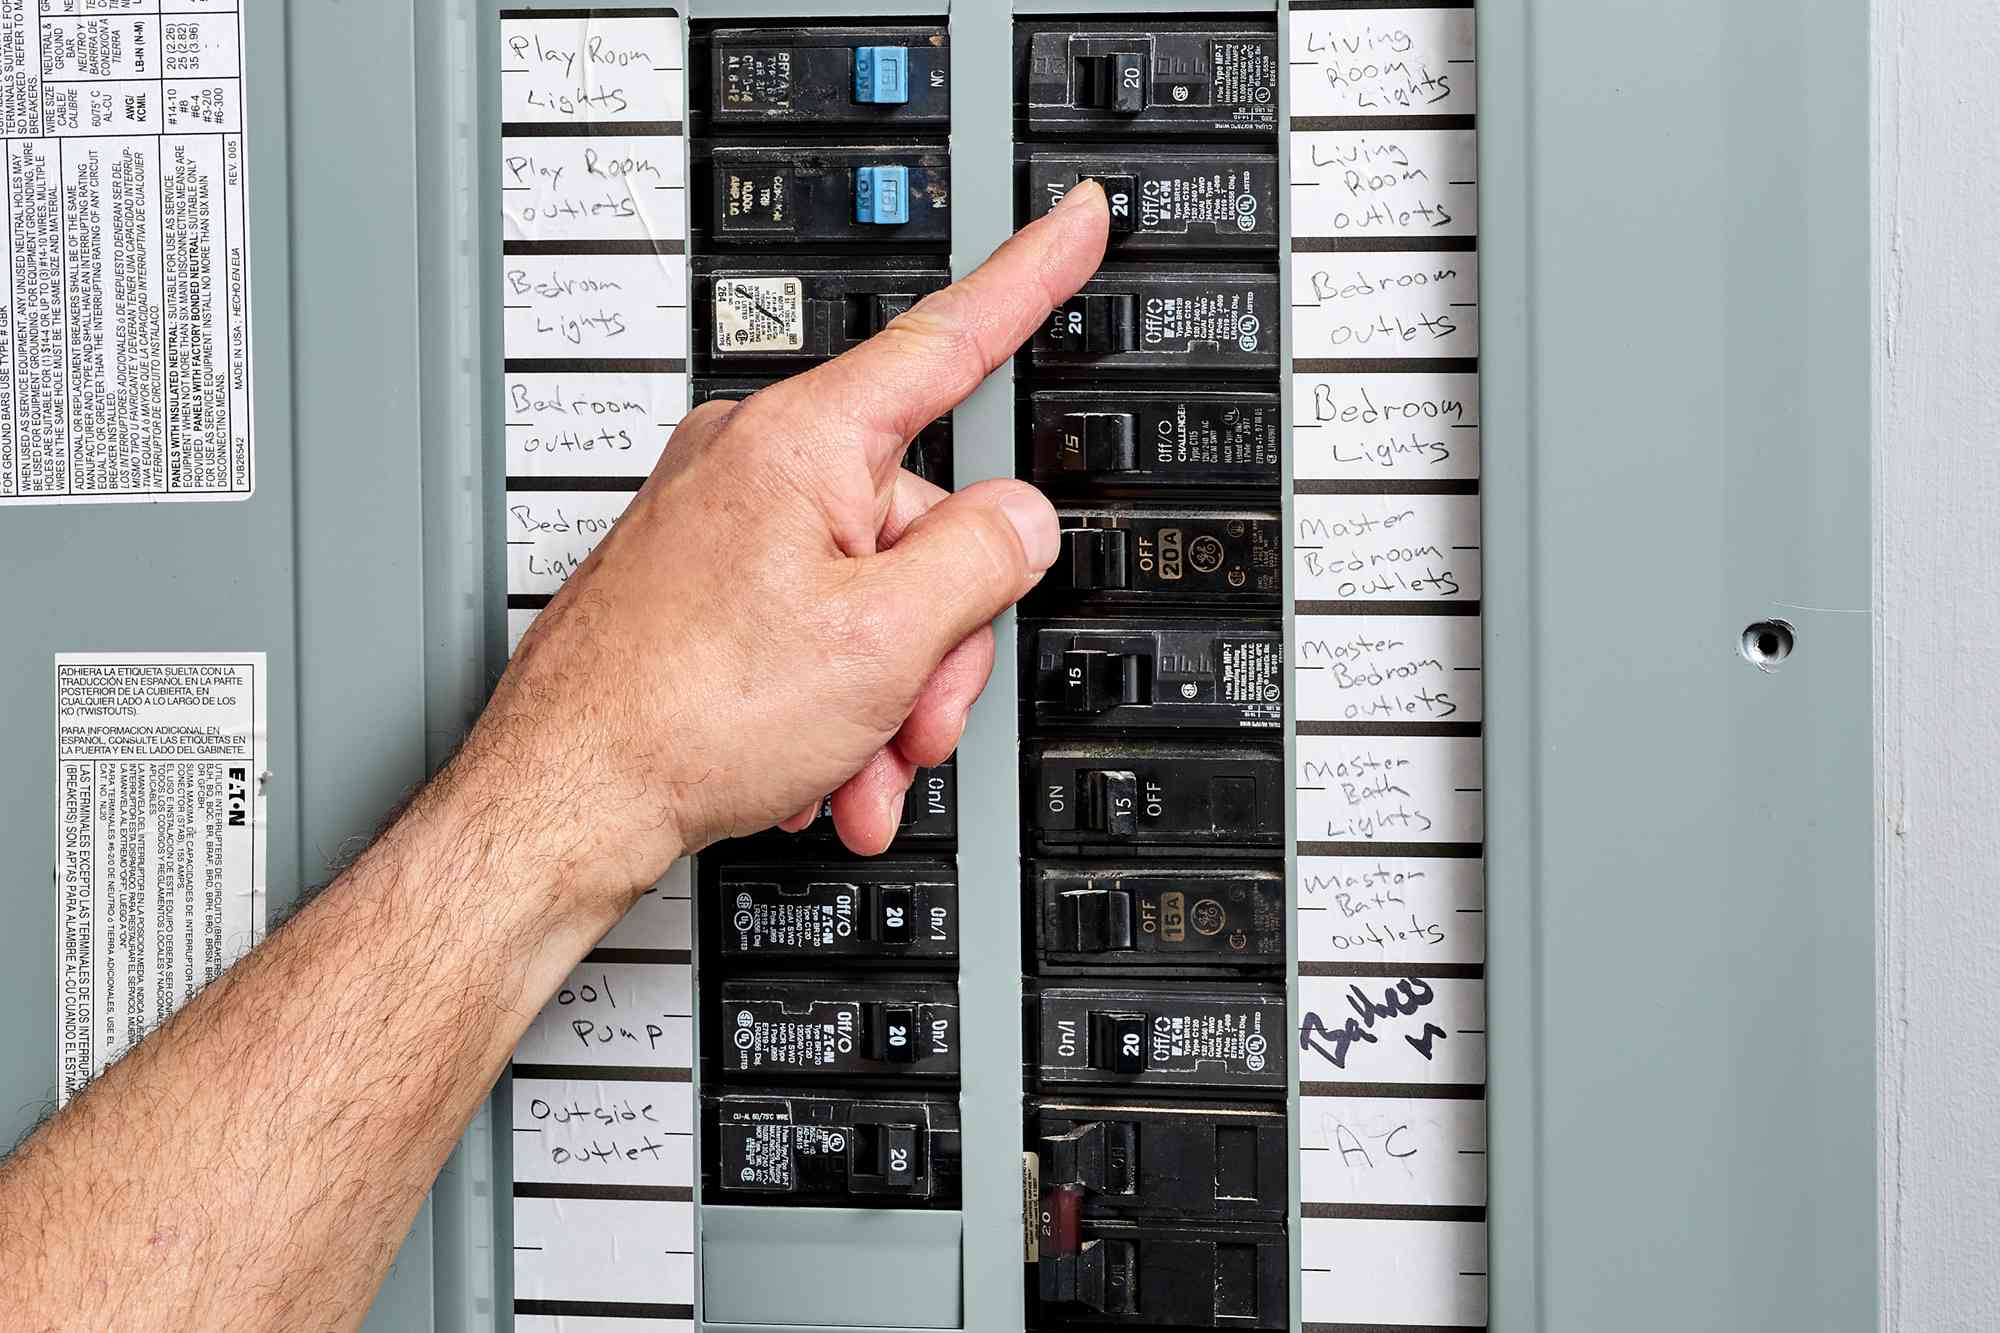 Power turned off through circuit breaker in service panel